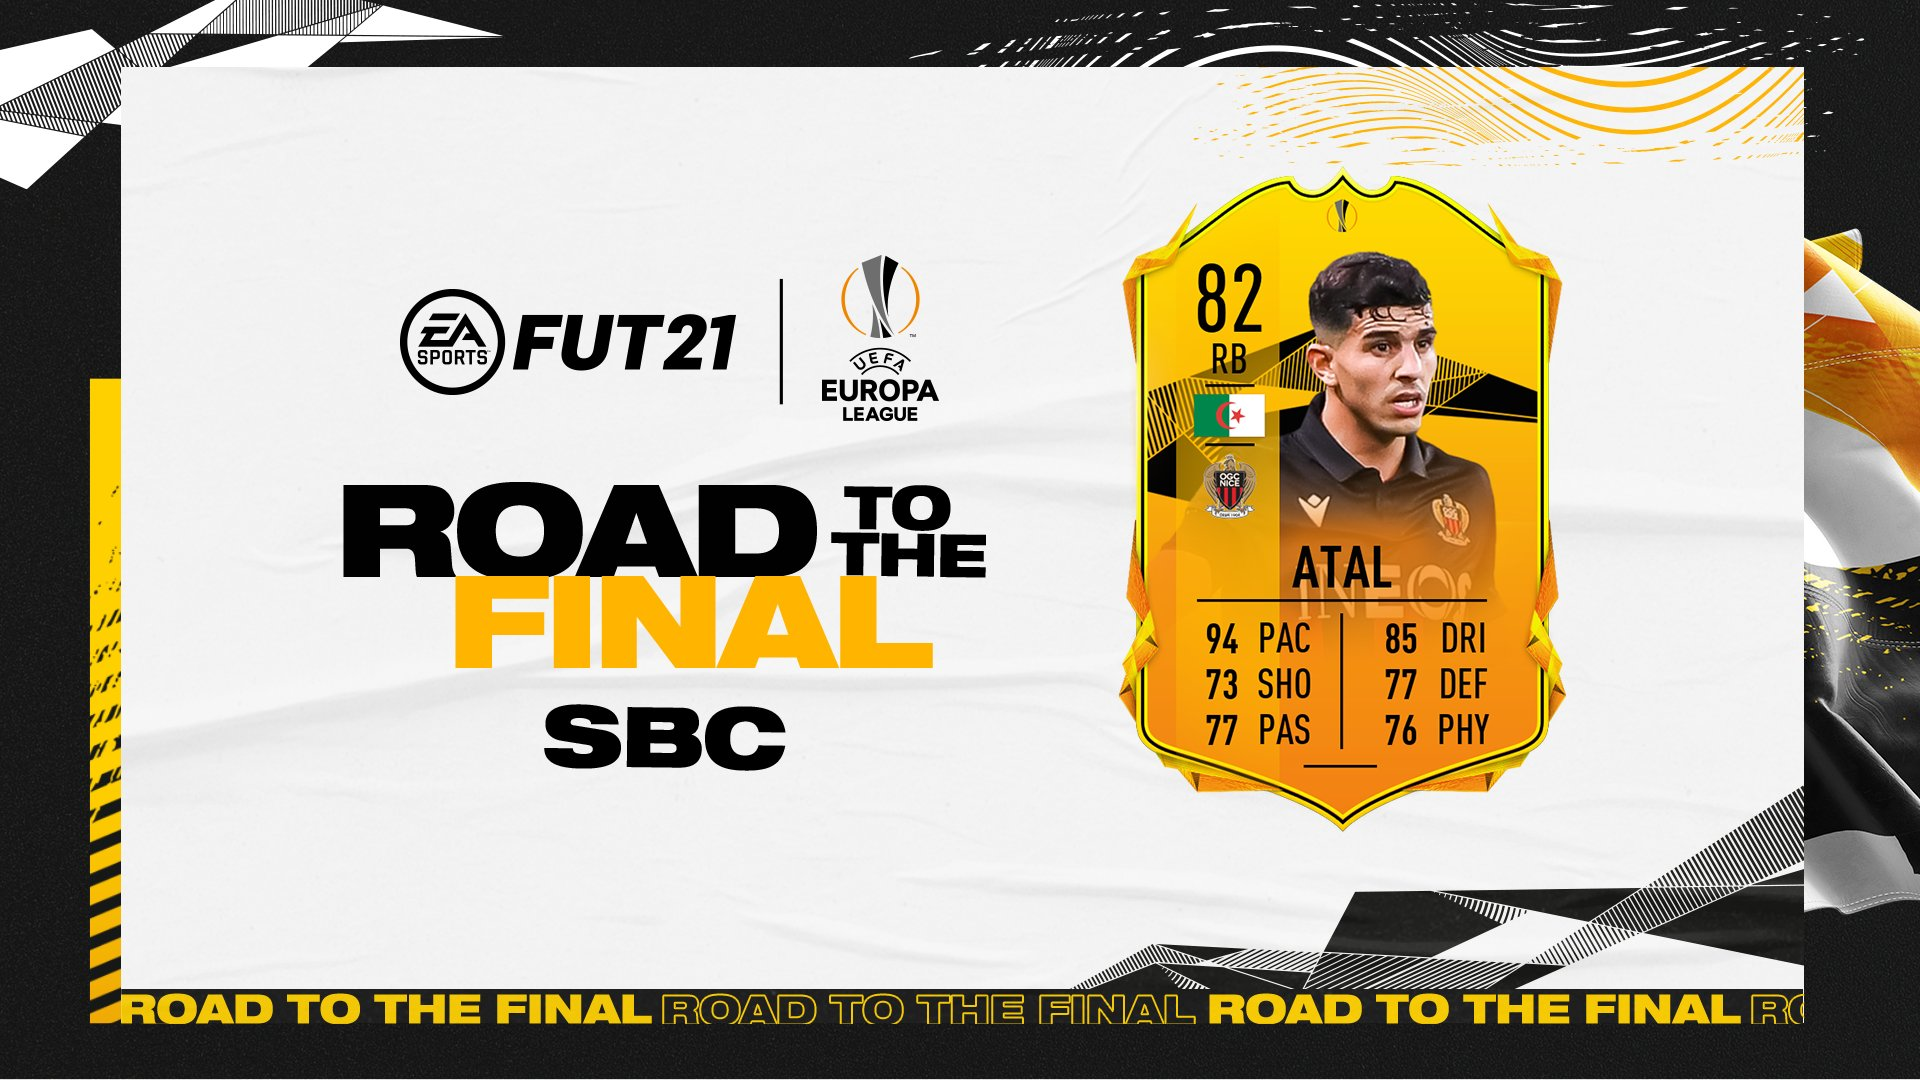 how to complete uel rttf atal sbc in fifa 21 ultimate team dot esports how to complete uel rttf atal sbc in